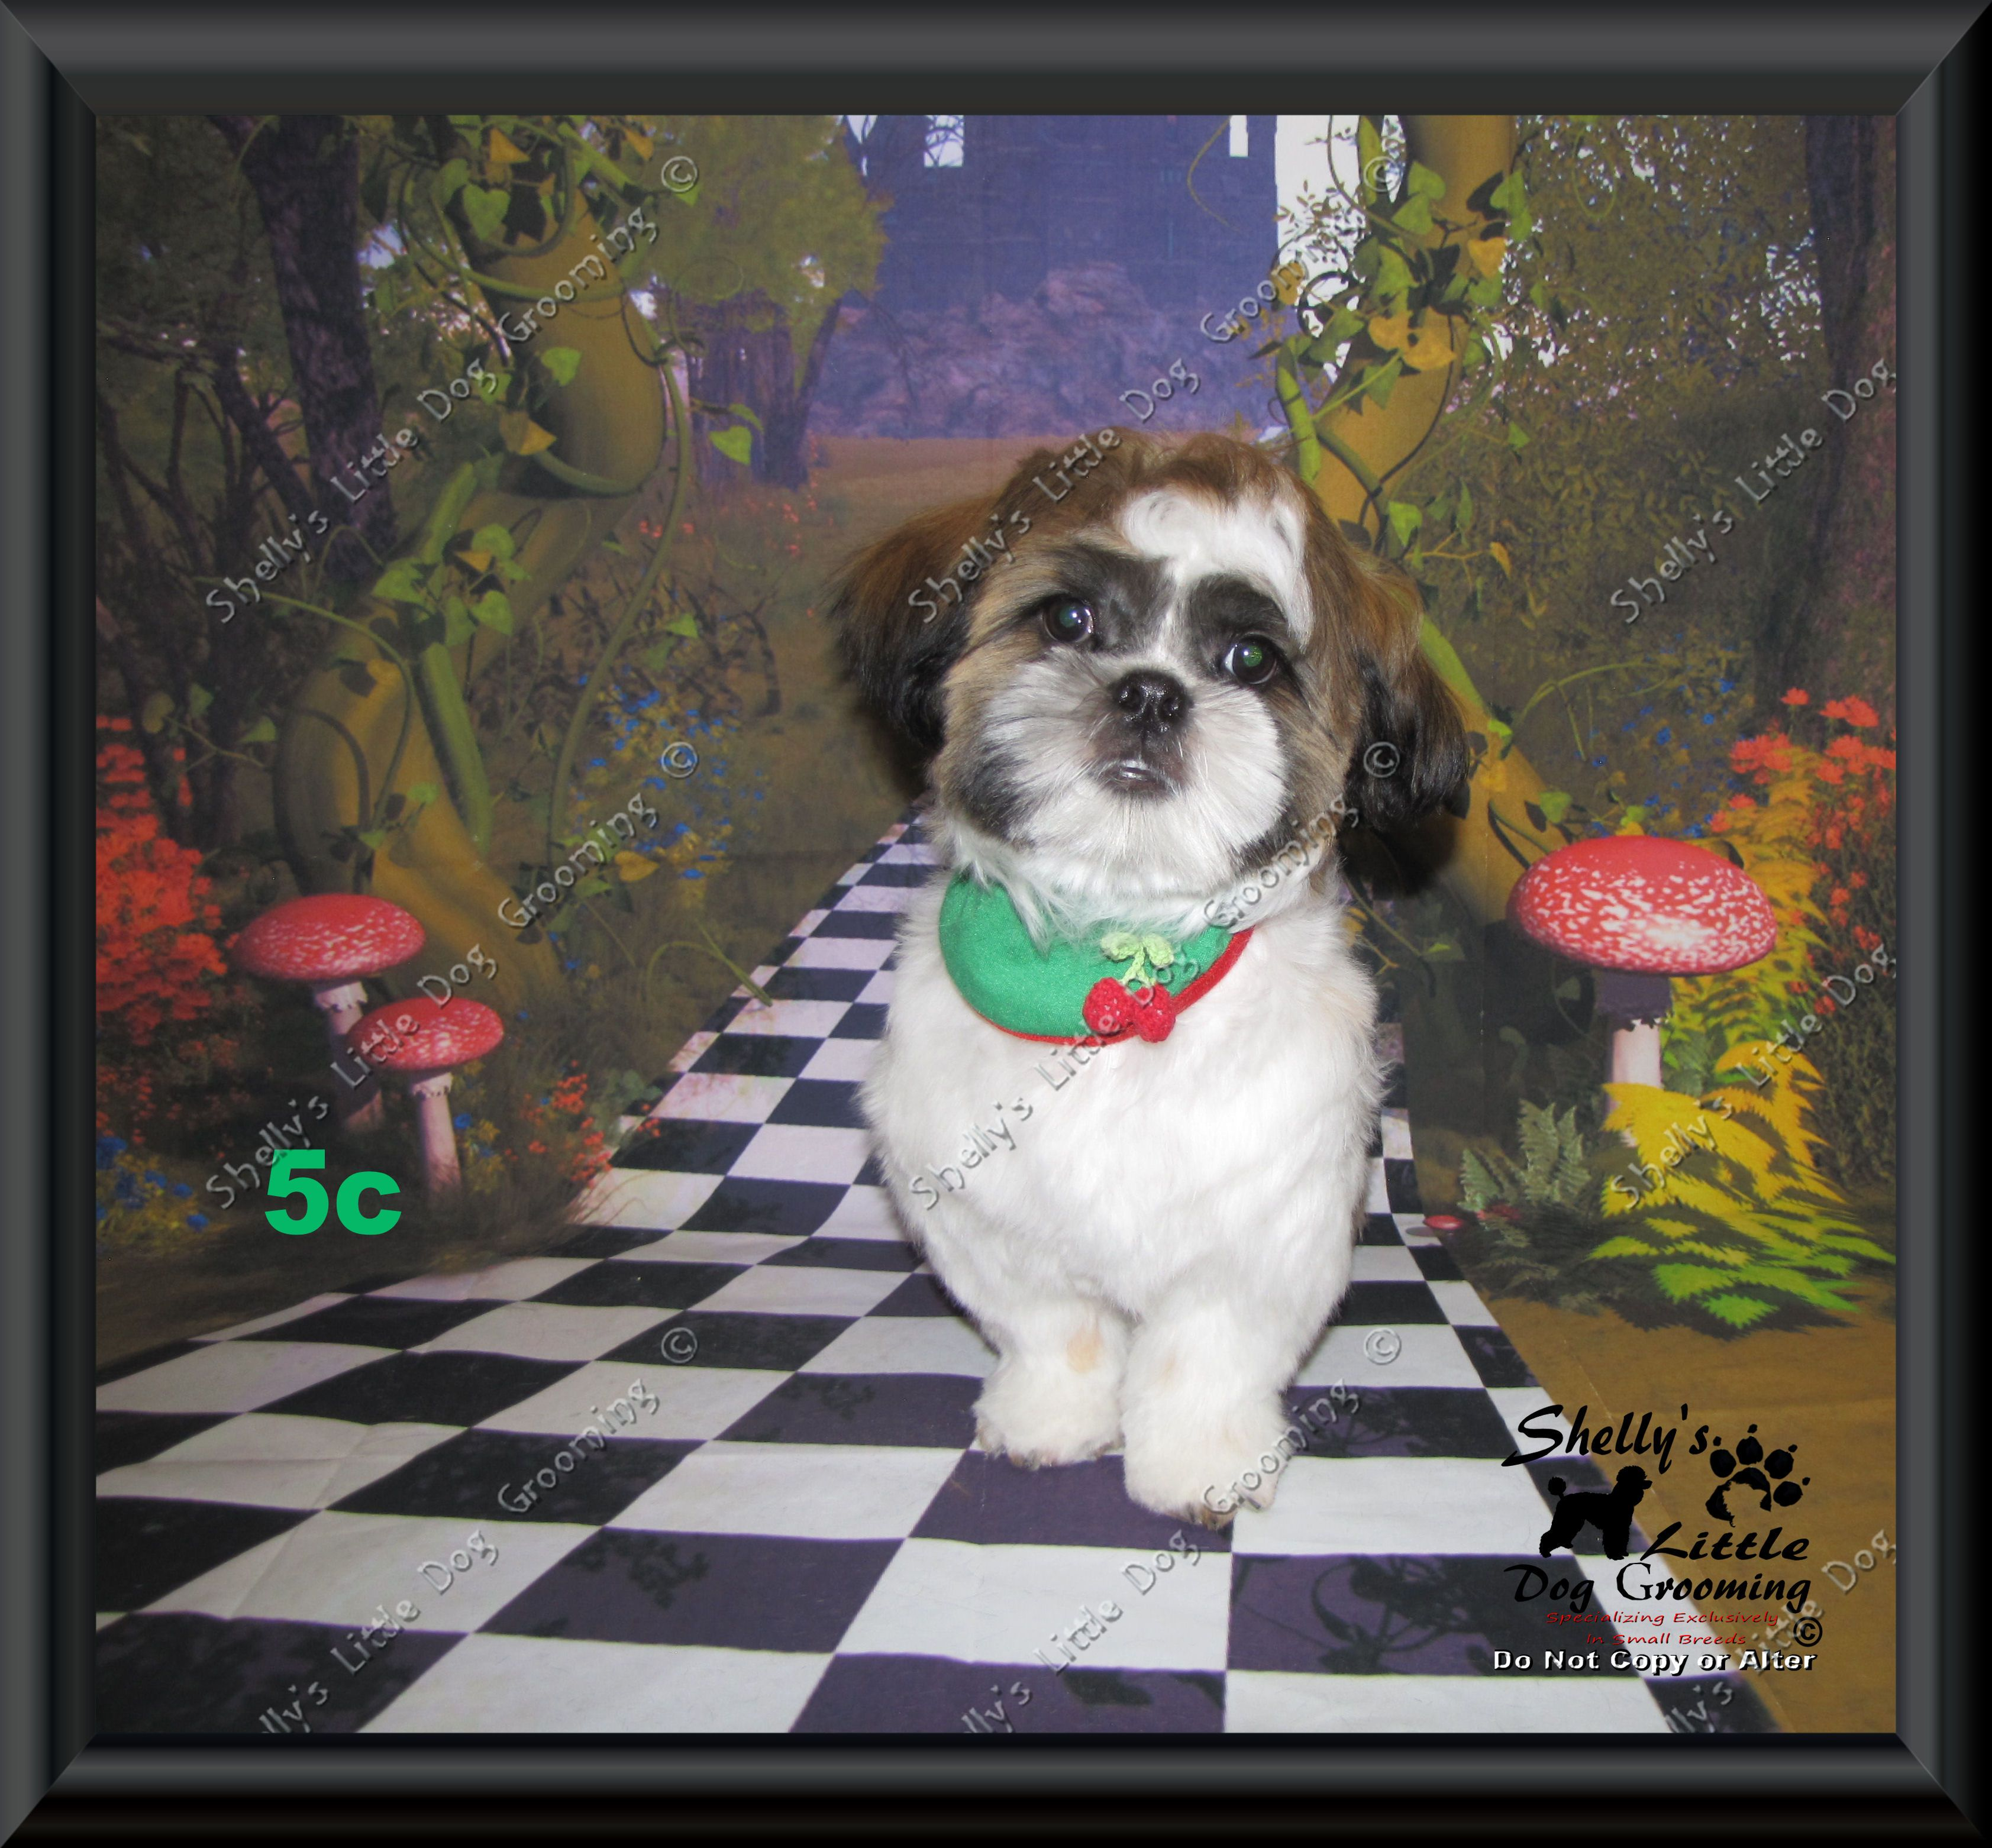 Walley 2019 Shelly S Little Dog Grooming Dogs Little Dogs